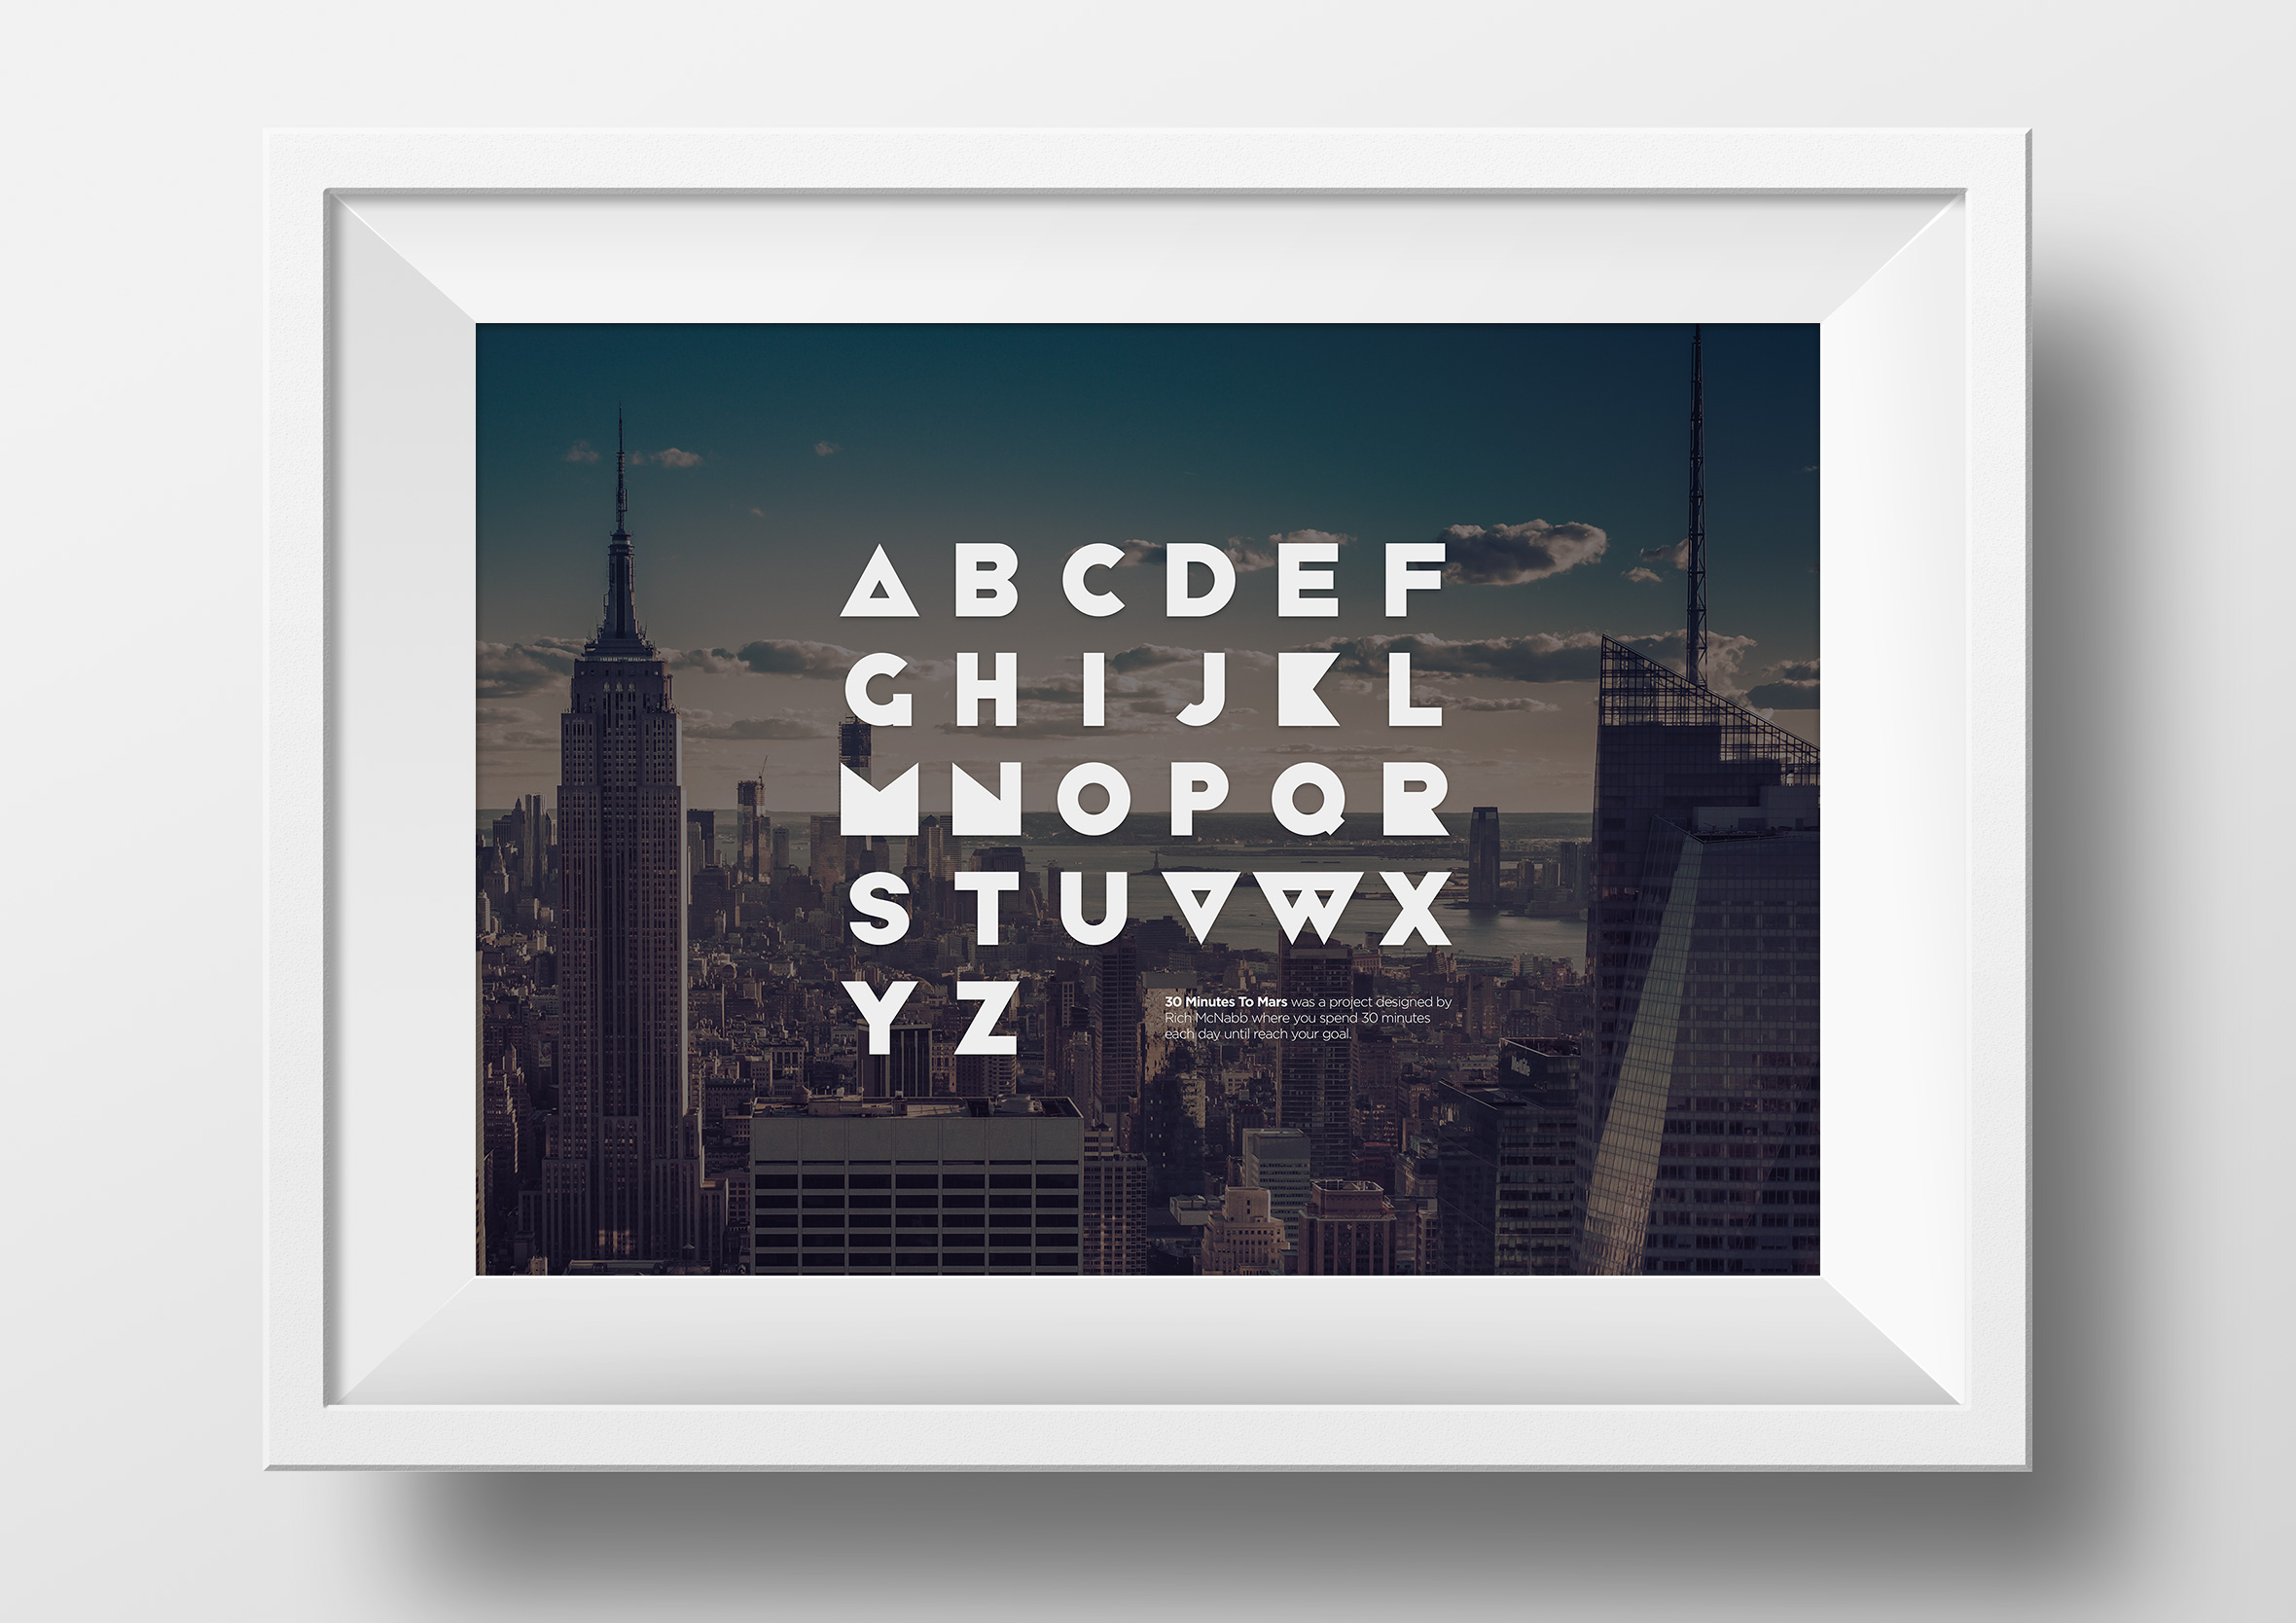 30 Minutes to Mars free font framed dark